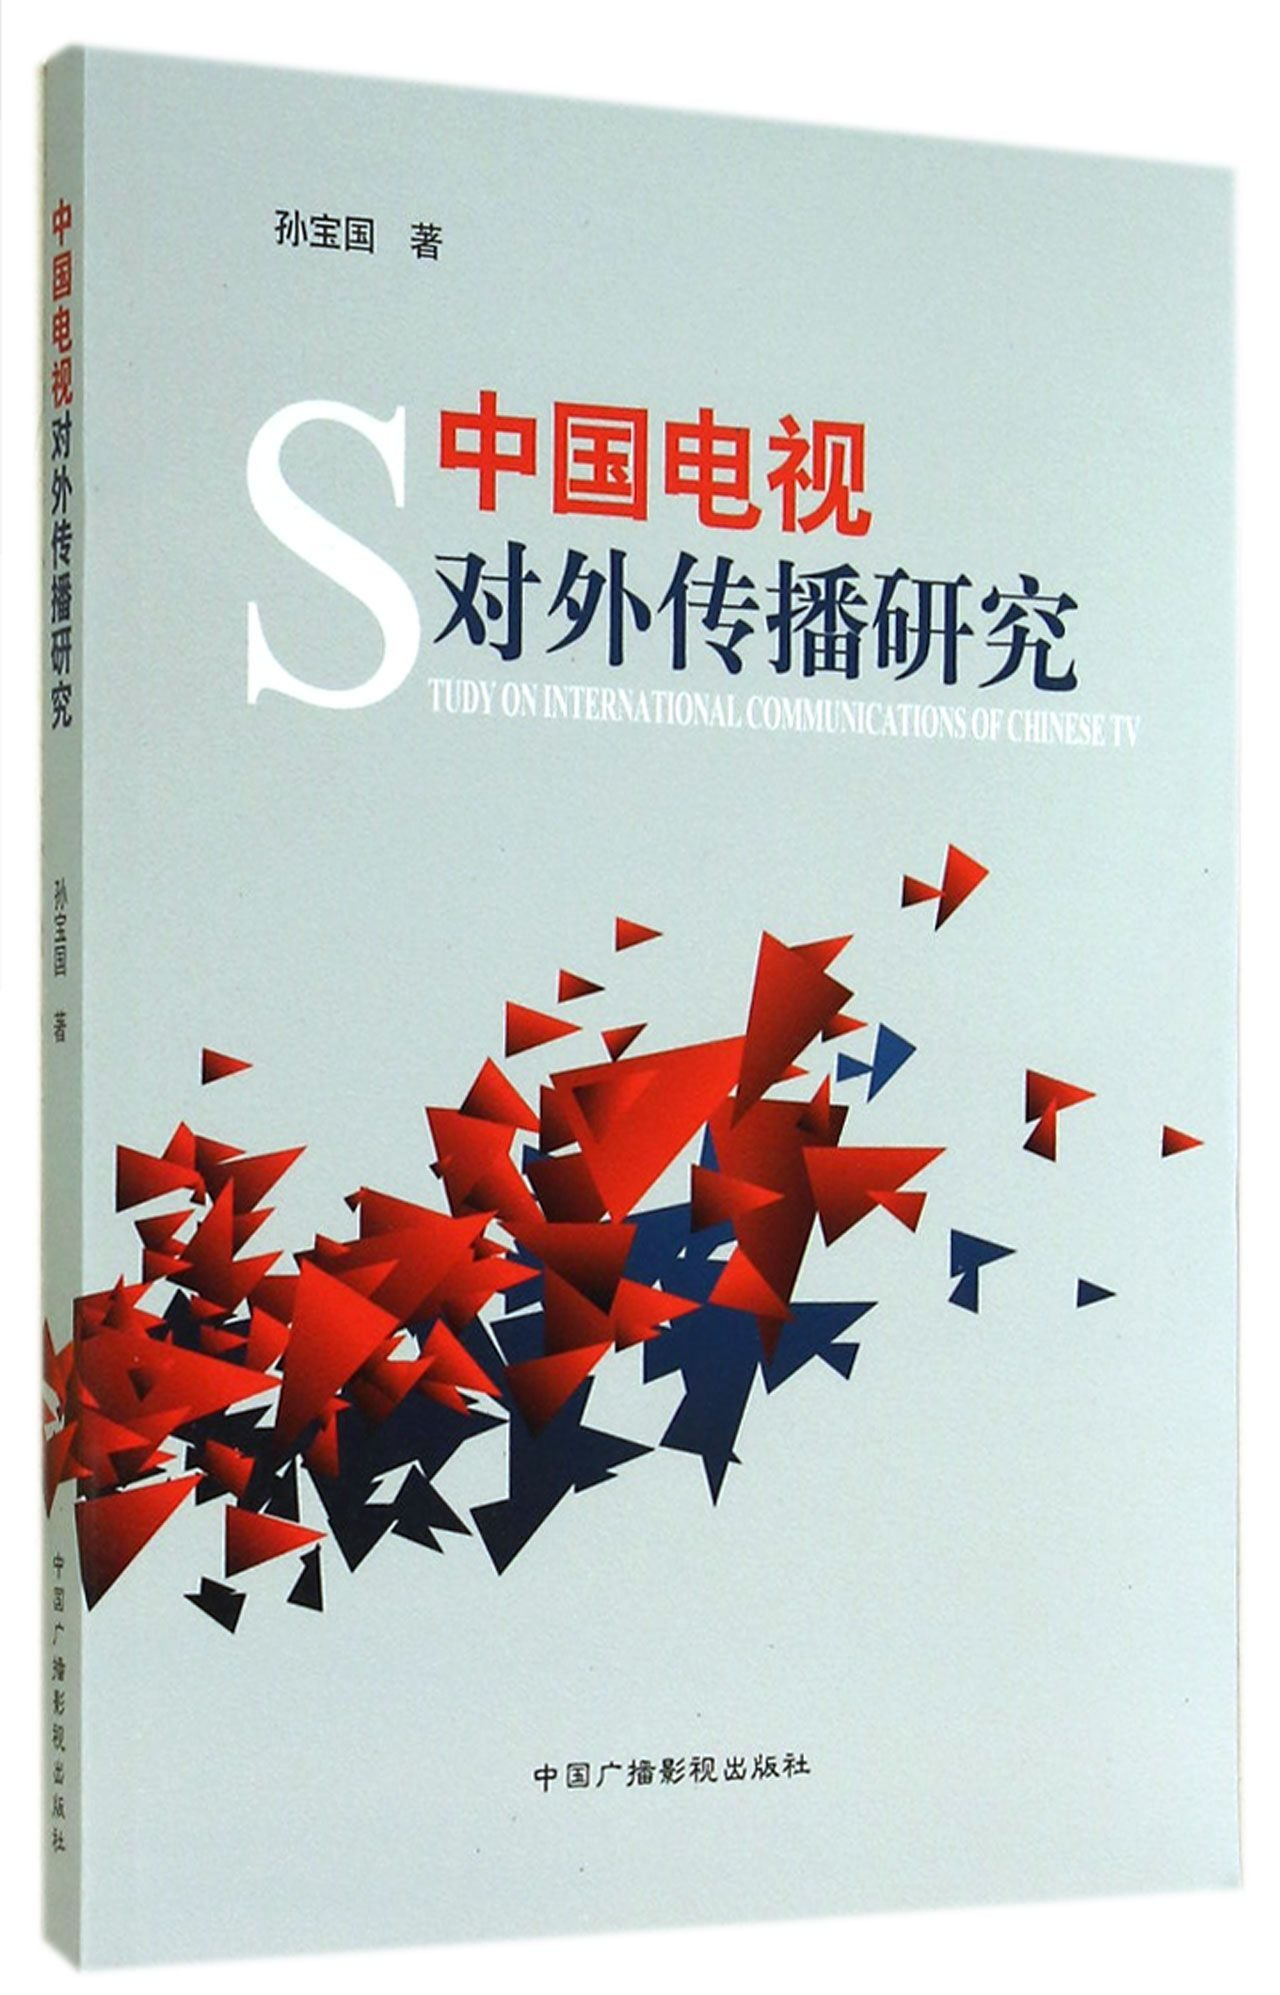 Read Online External Communication Research Chinese TV(Chinese Edition) pdf epub